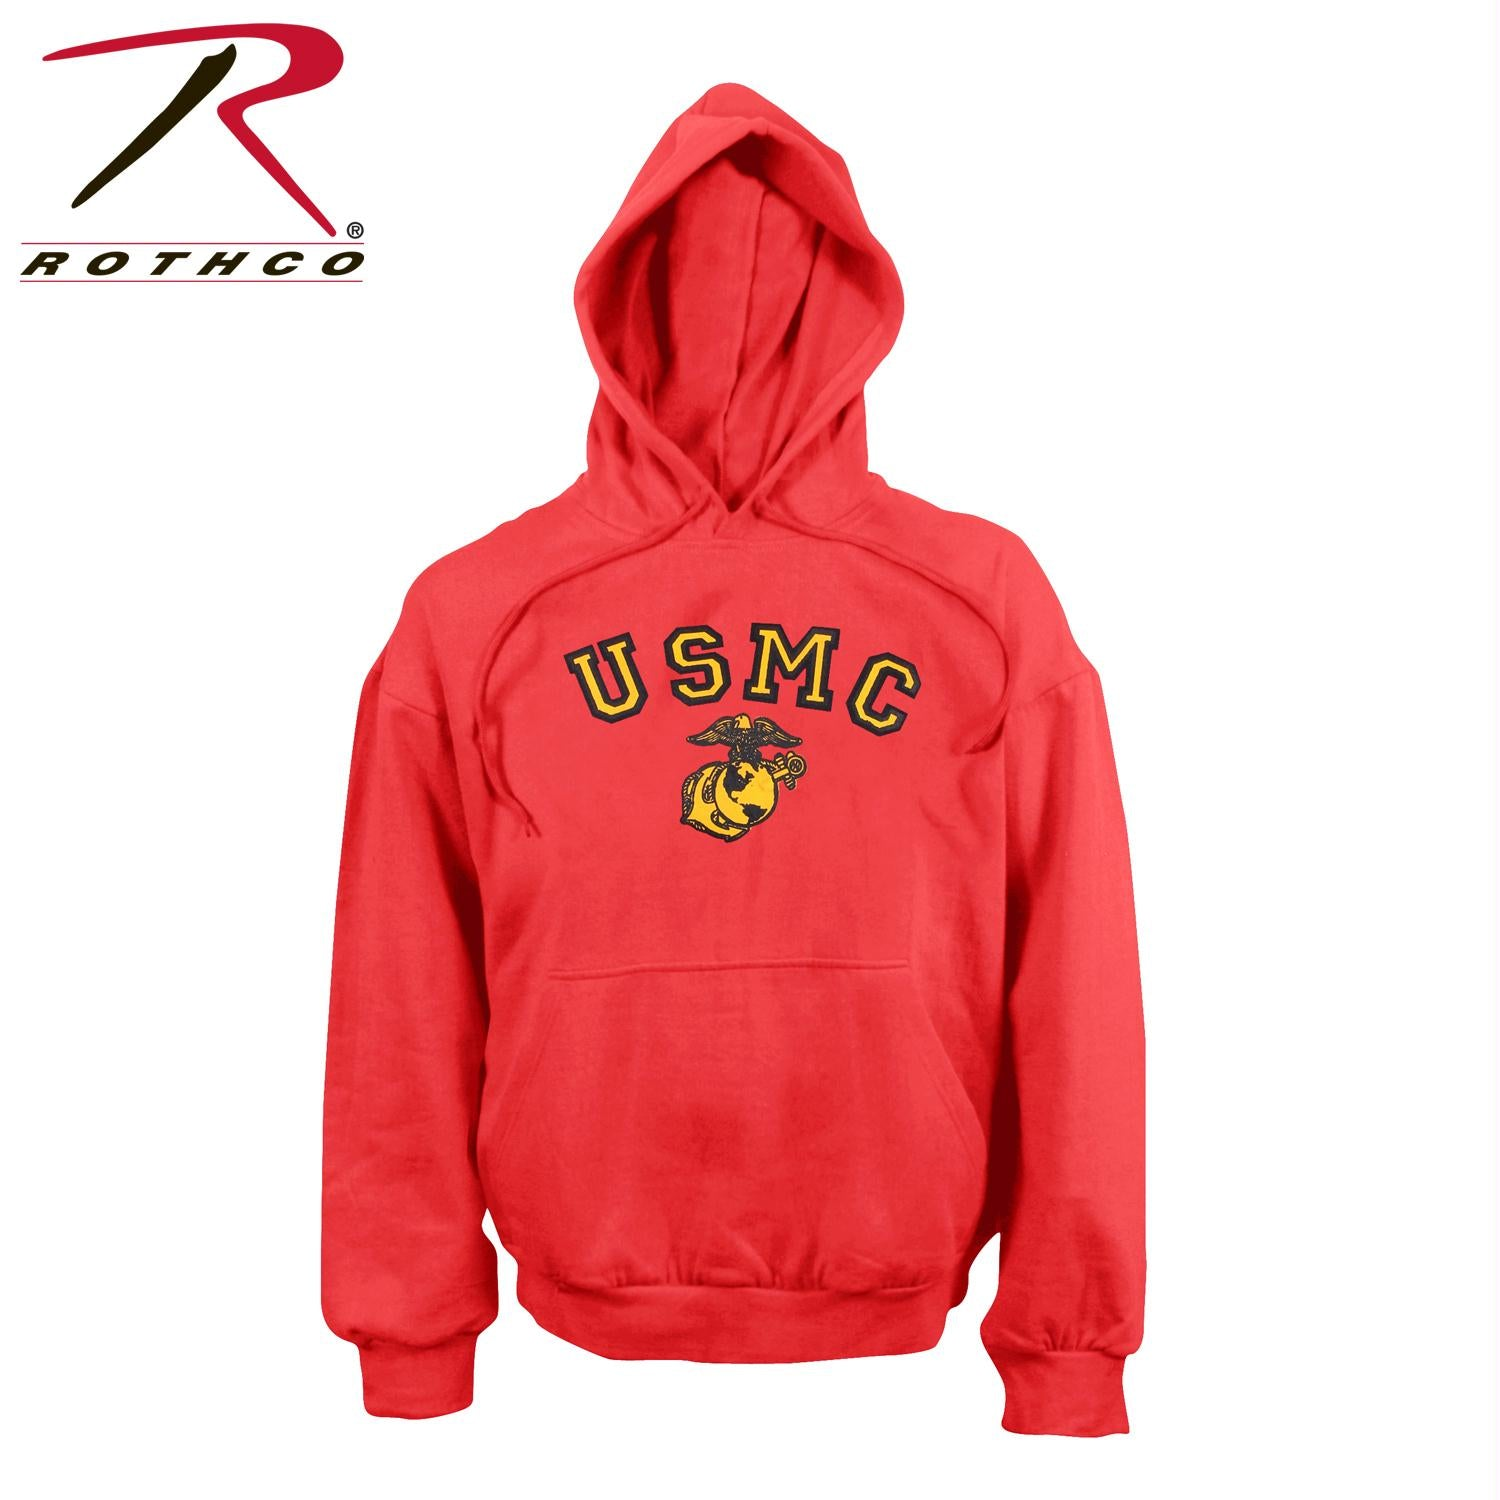 Rothco USMC Globe & Anchor Pullover Hooded Sweatshirt - L